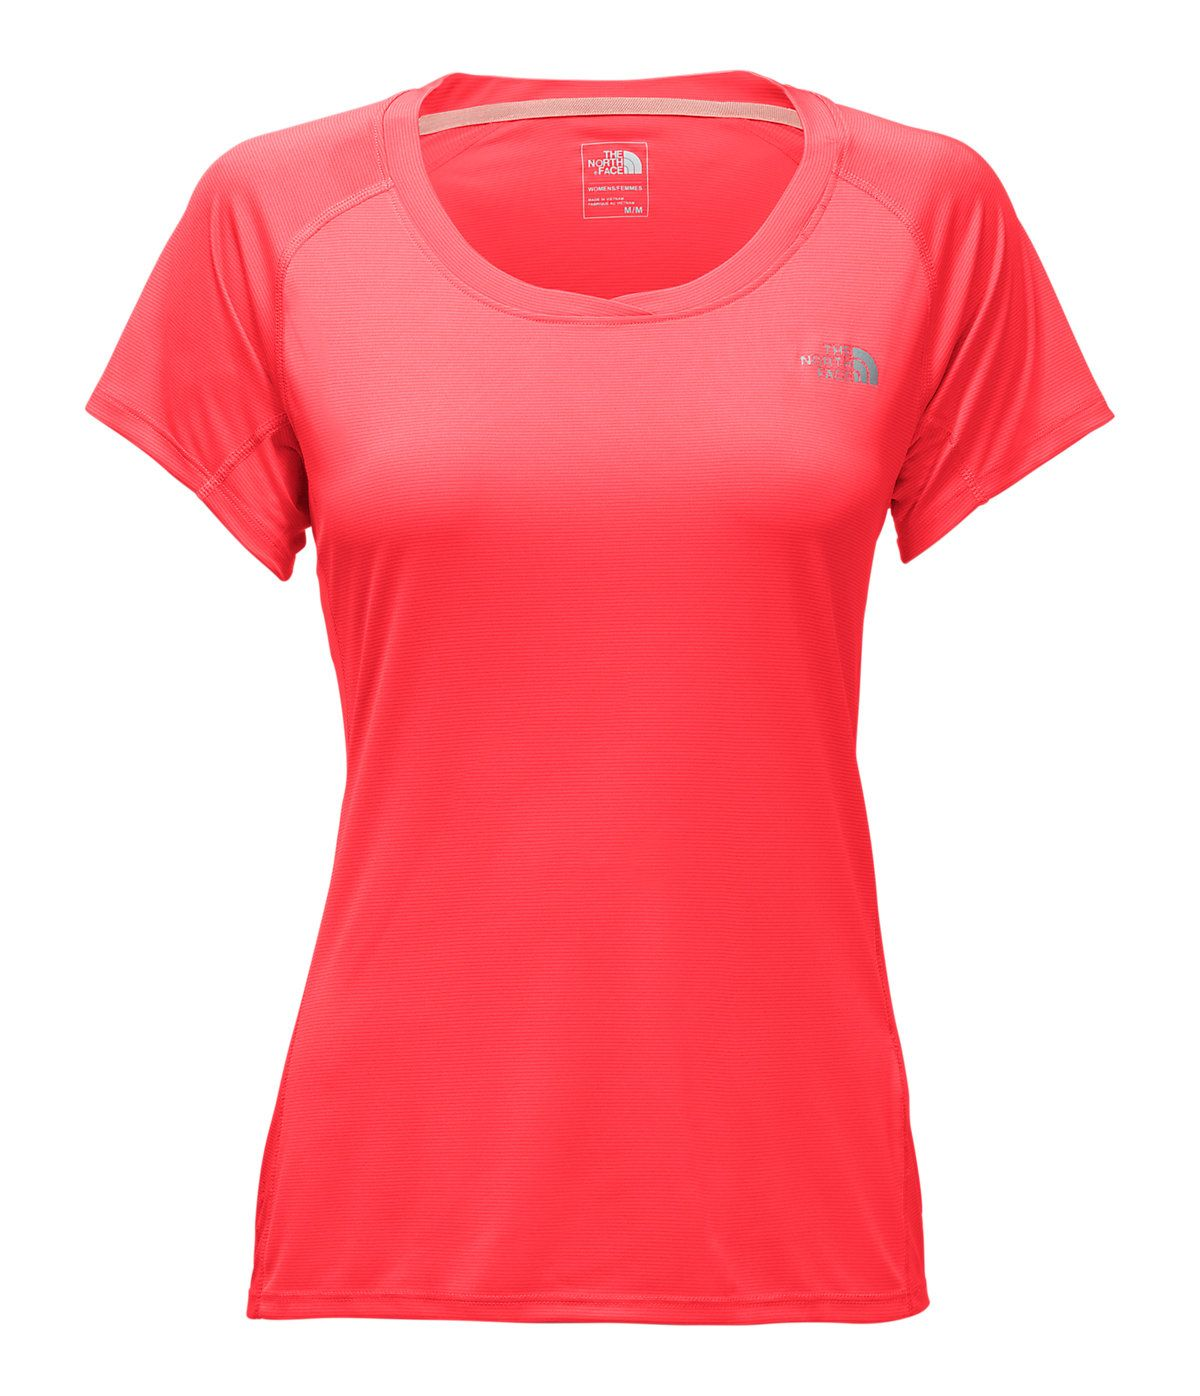 85cdb89a7 Women's ambition short-sleeve tee in 2019 | Products | North face ...